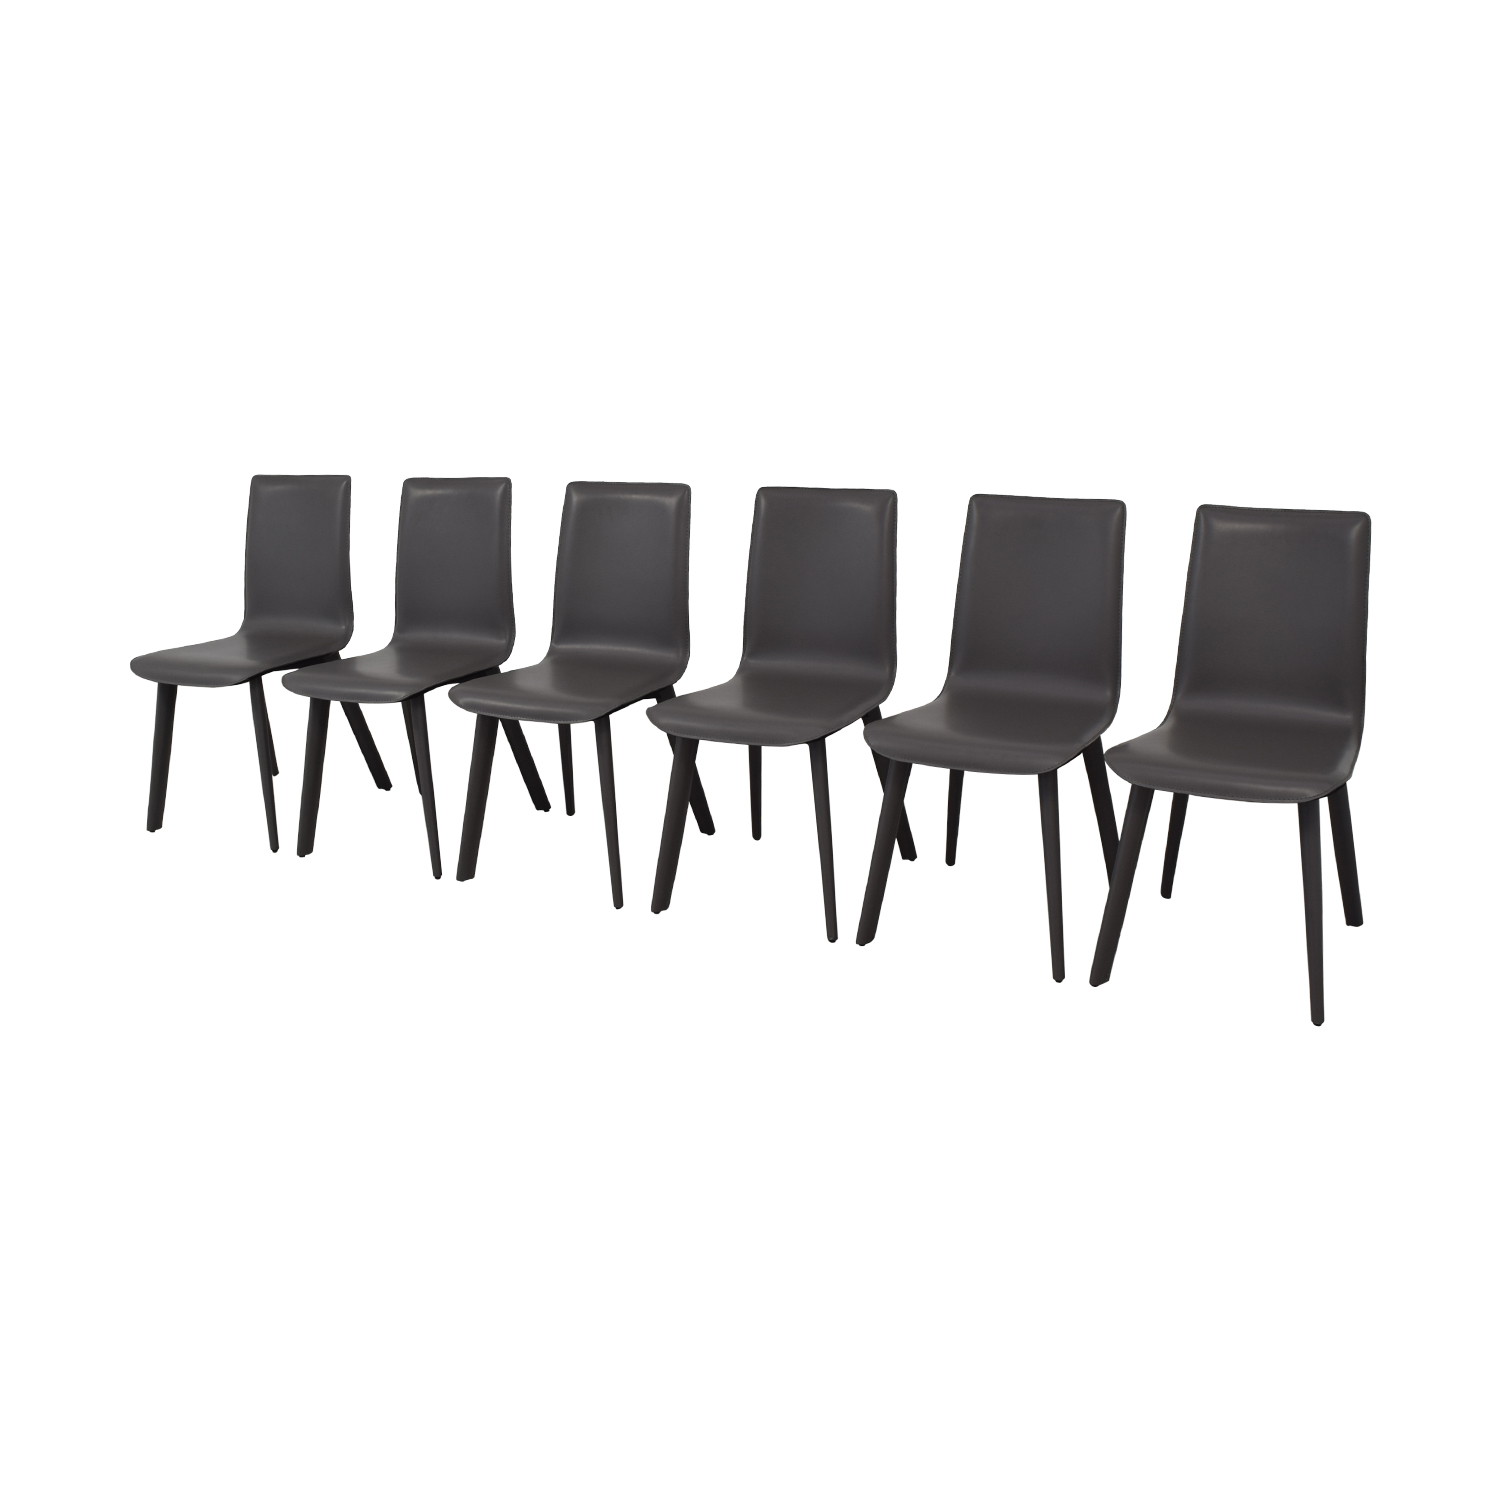 Room & Board Room & Board Hirsch Dining Chairs second hand